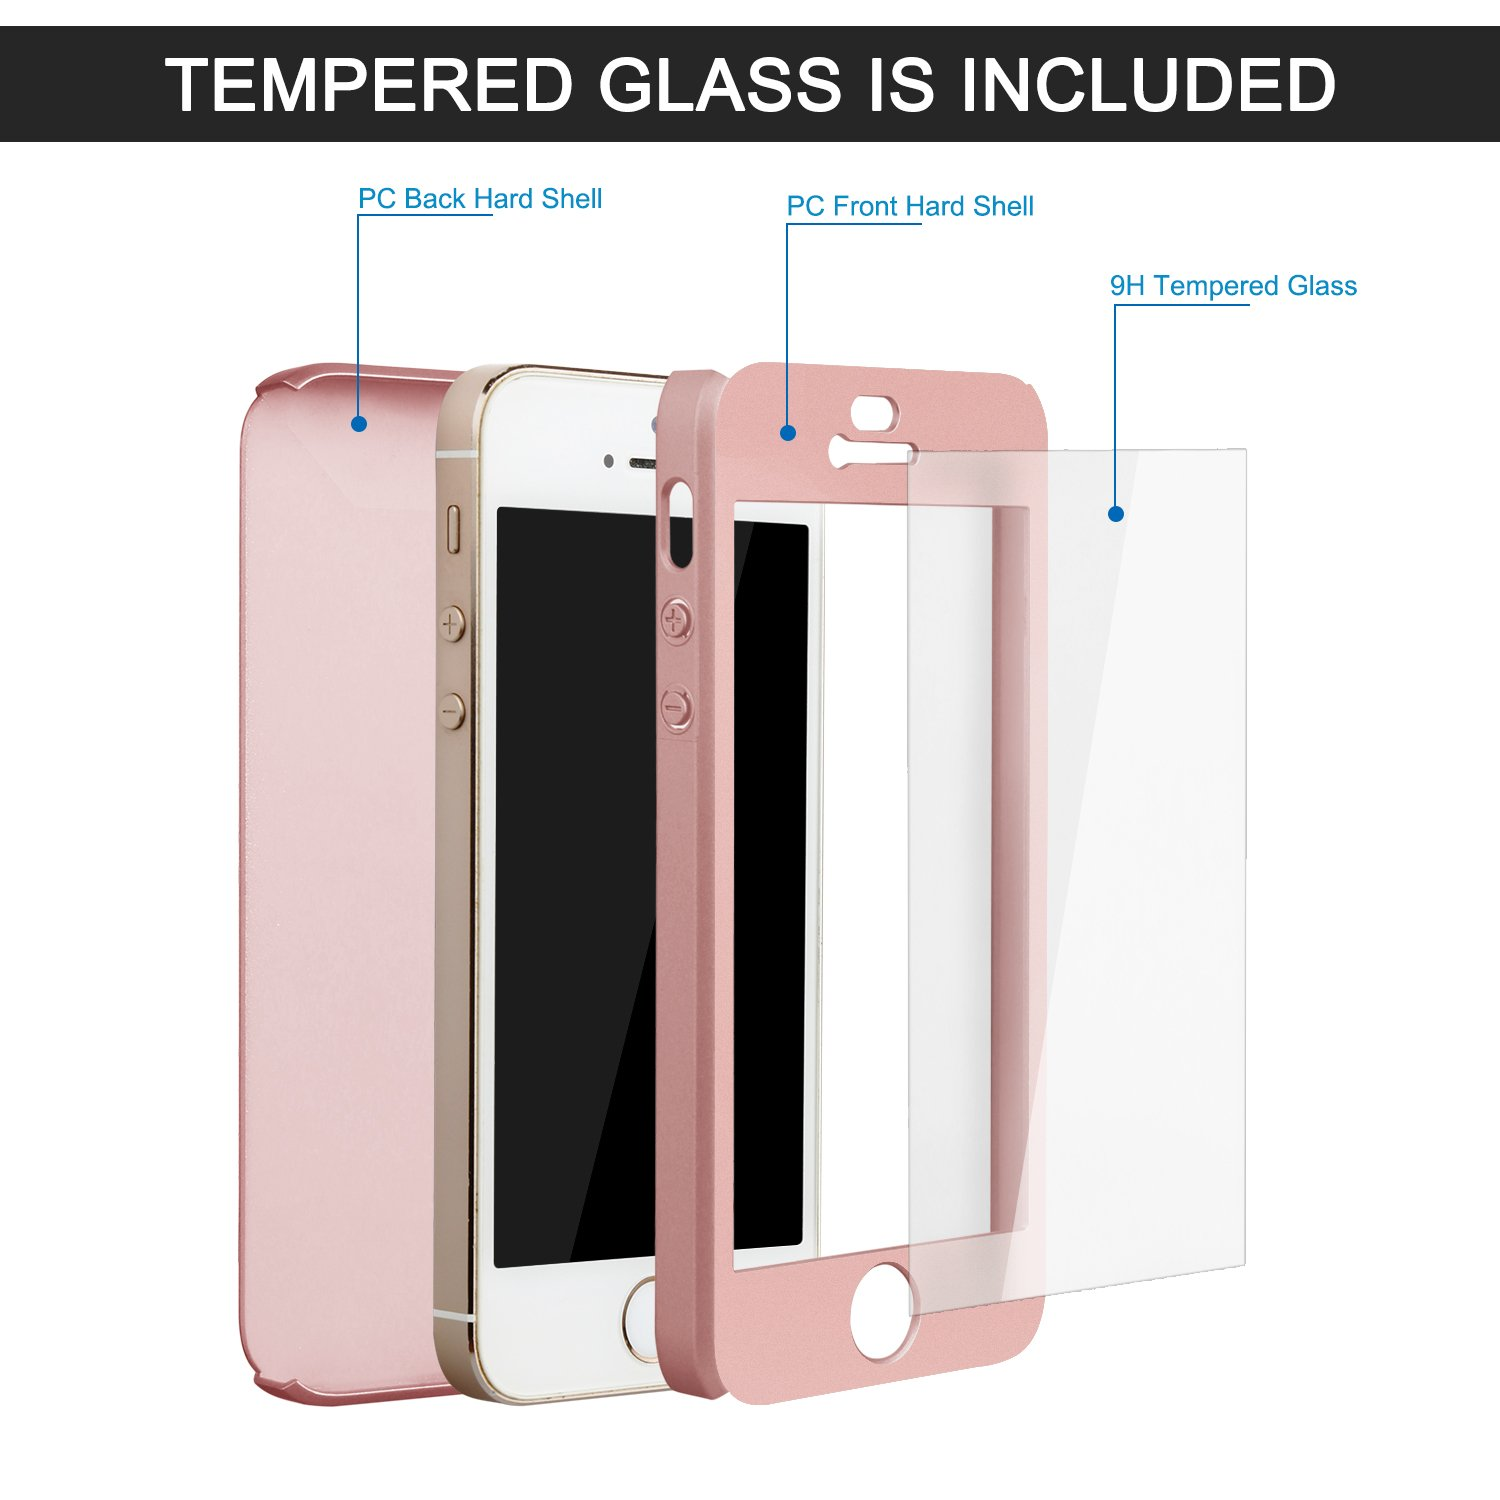 Hardcase Case 360 Iphone 6 6s Casing Full Body Cover Clear Bening Calandiva Shell Tempered Glass For Oppo F7 623 Inch Merah Amazoncom 5s 5 Se